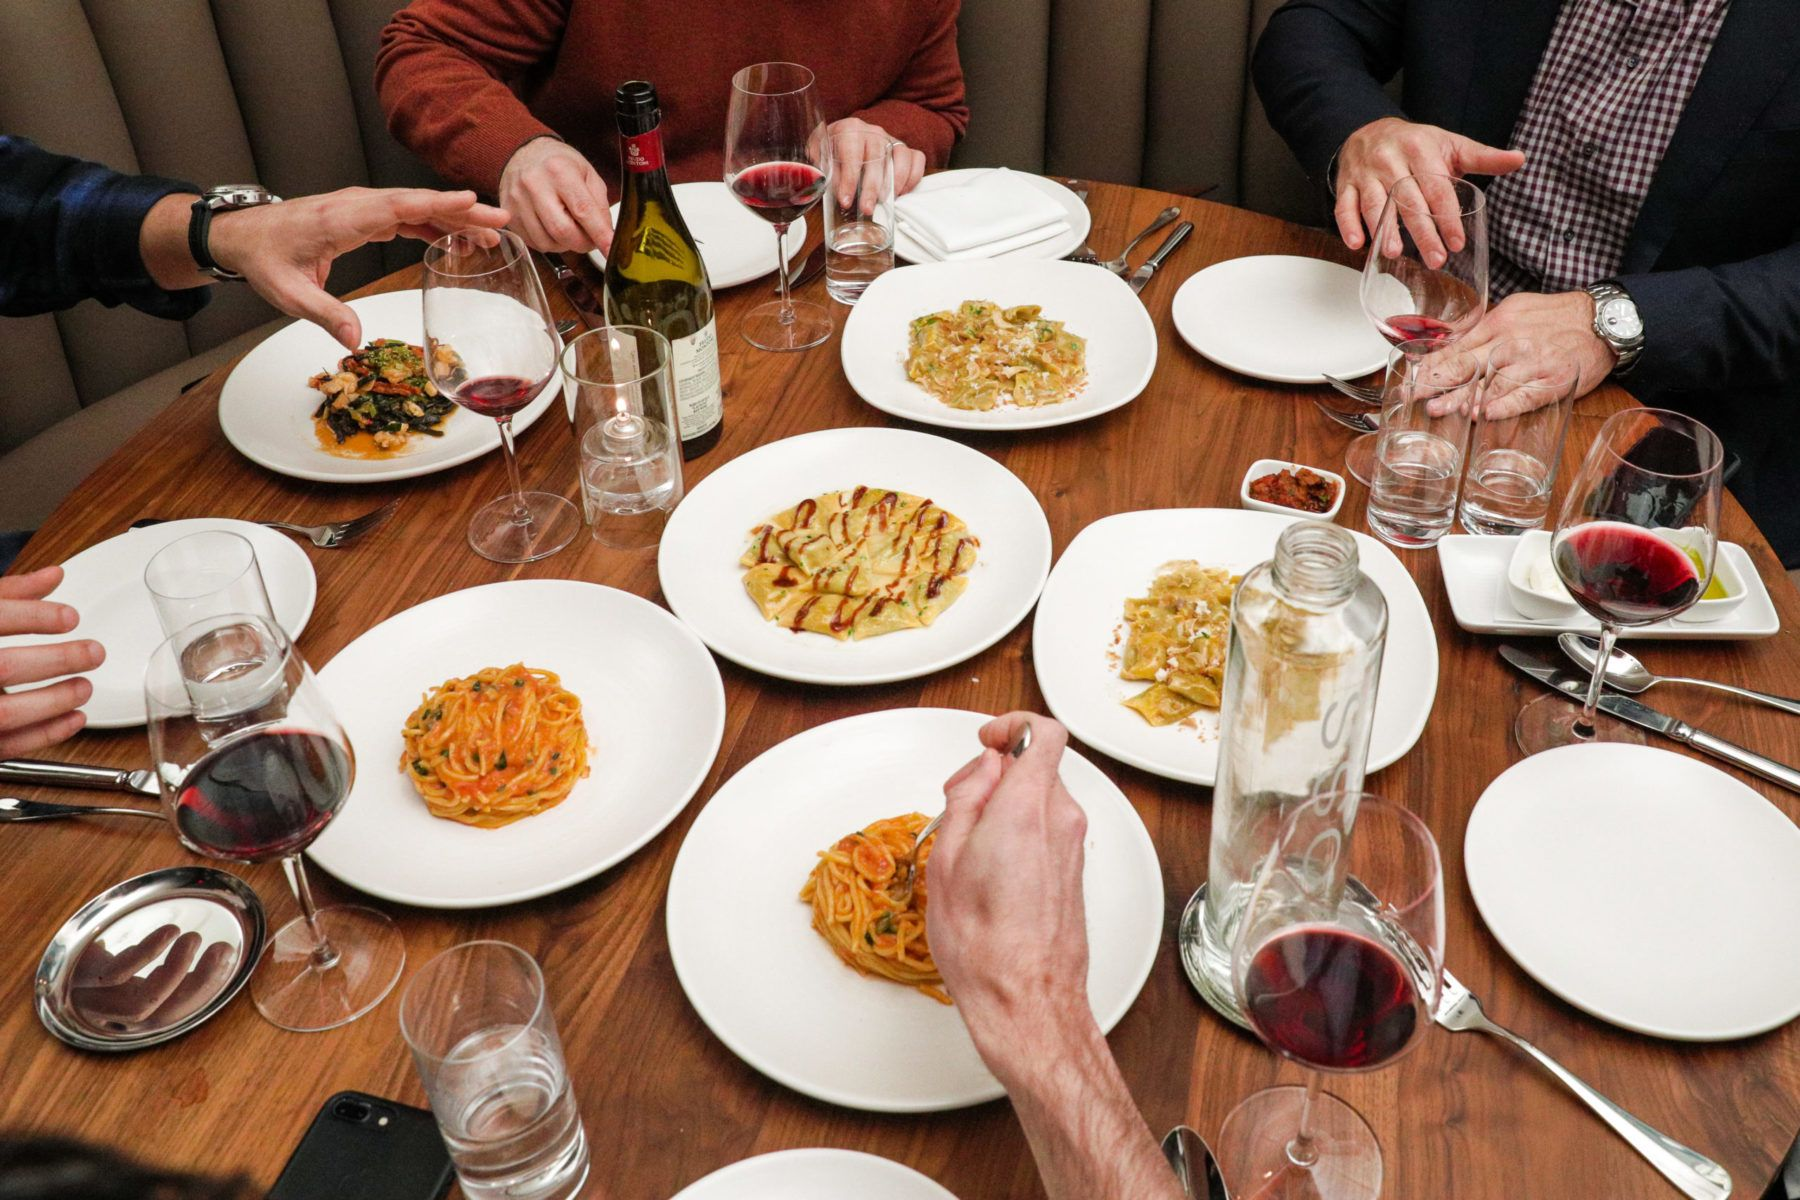 Table with plates of spaghetti, wine and people eating.